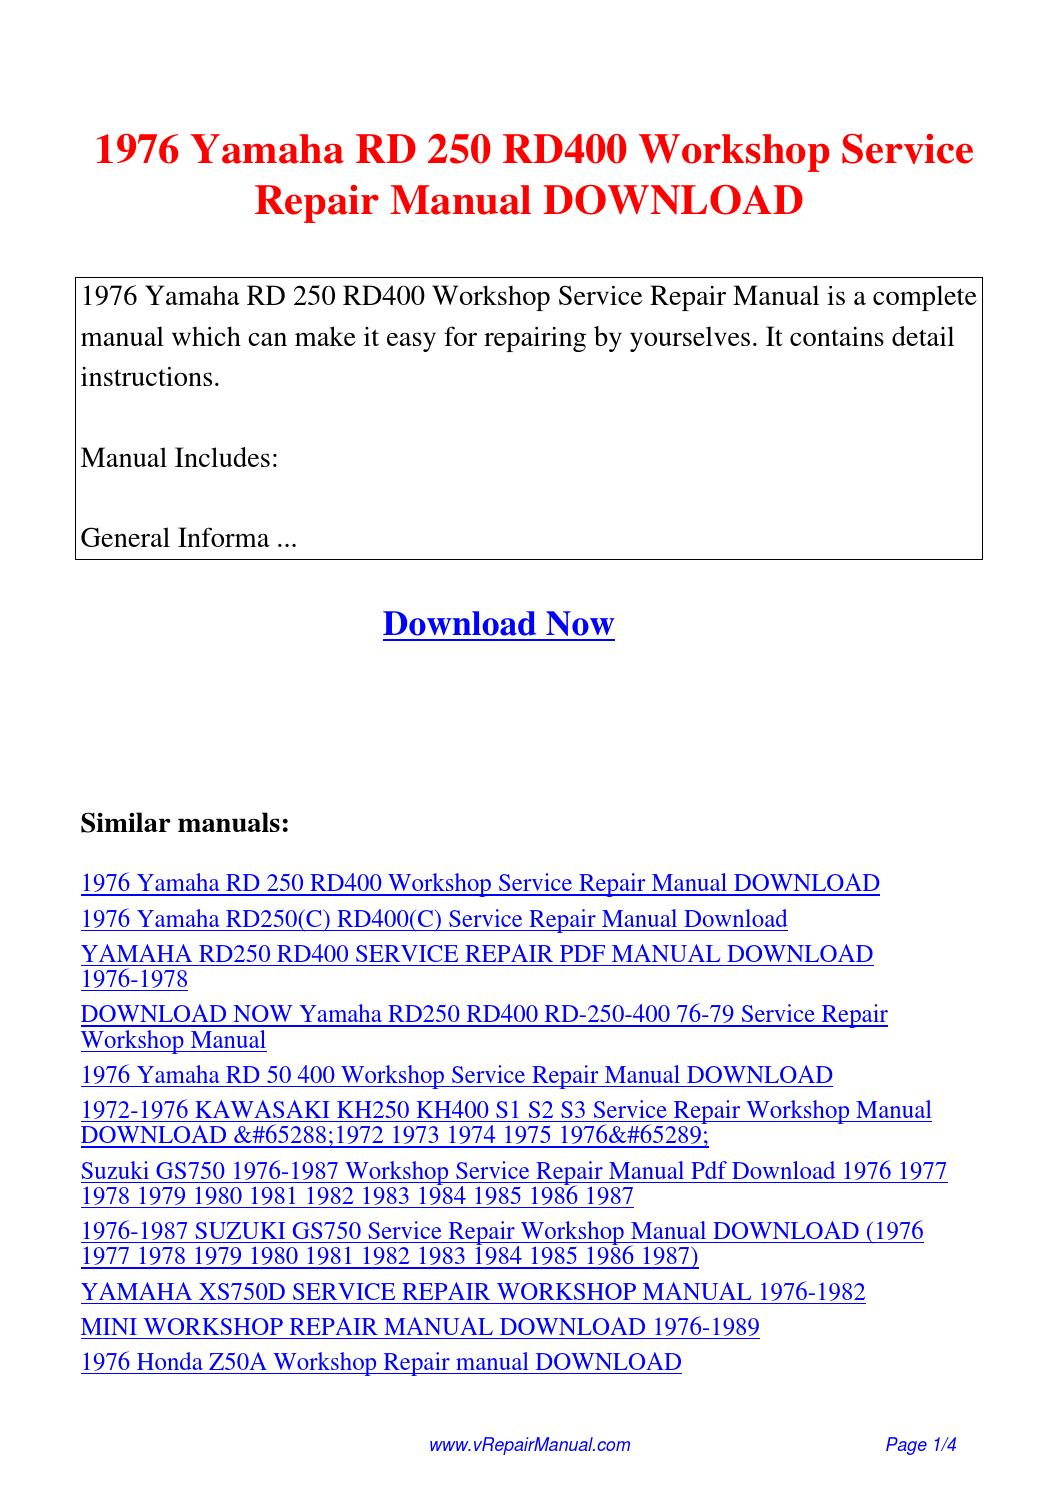 1976 Yamaha RD 250 RD400 Workshop Service Repair Manual.pdf by David Zhang  - issuu